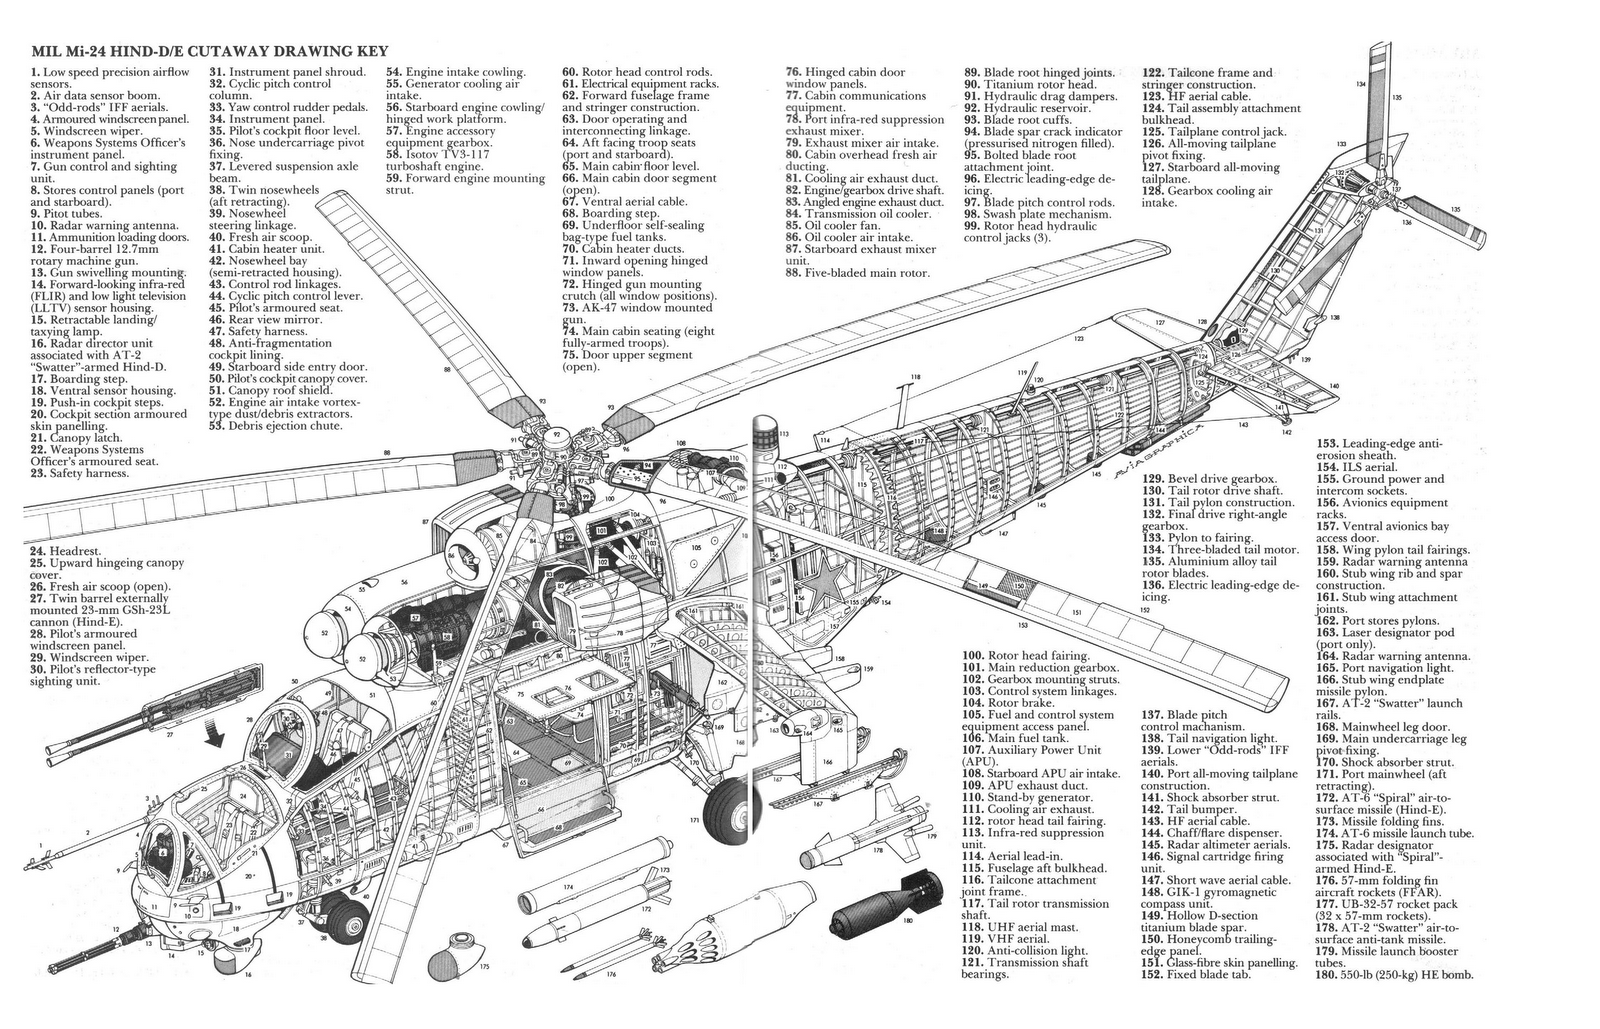 iphone 4 parts diagram labeled  iphone  free engine image